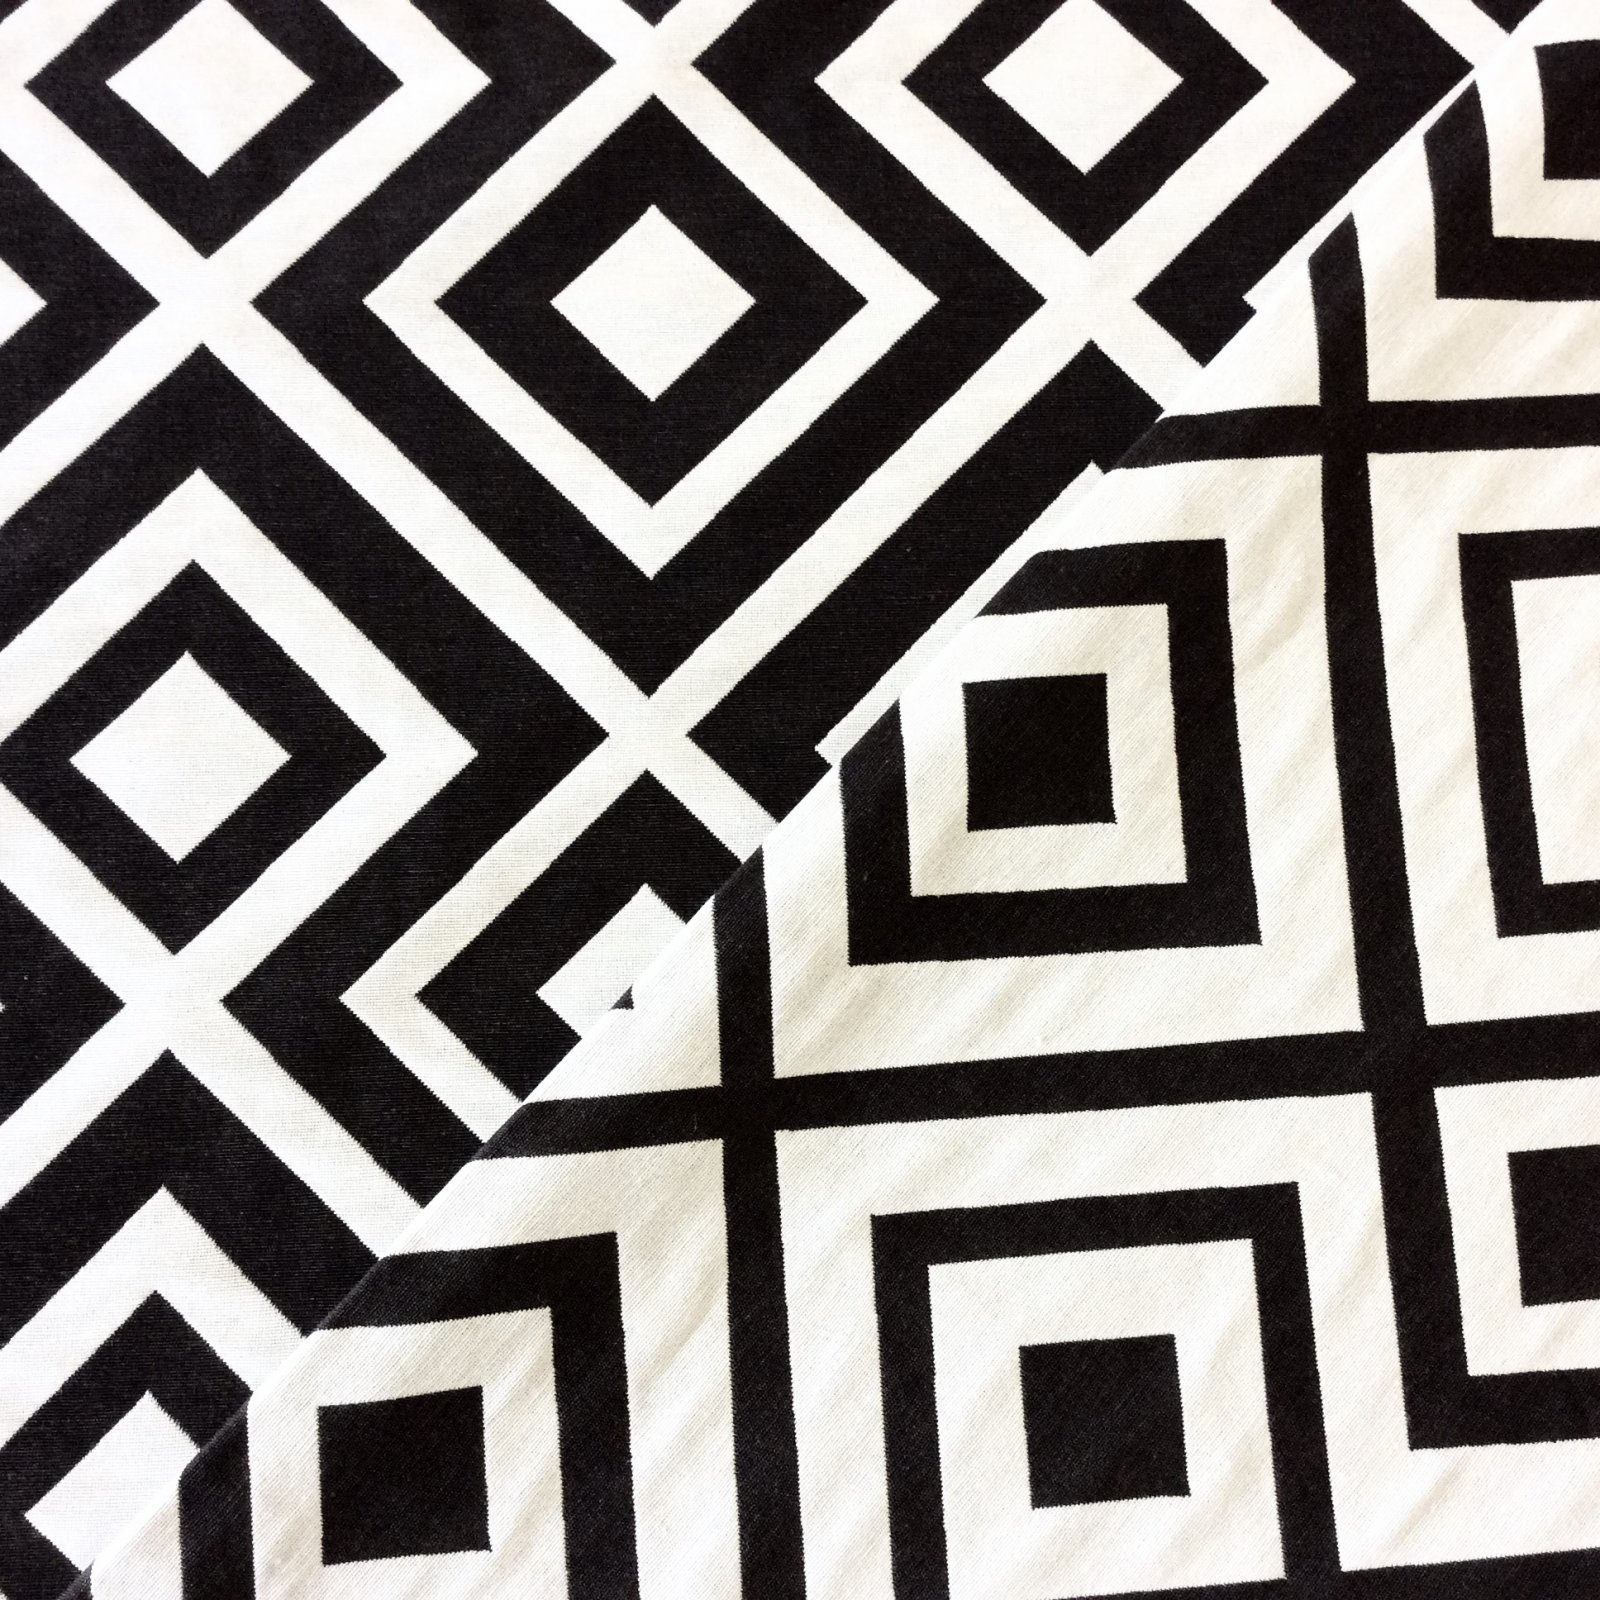 osepx100-b black & white diamond geo geometric home decor fabric